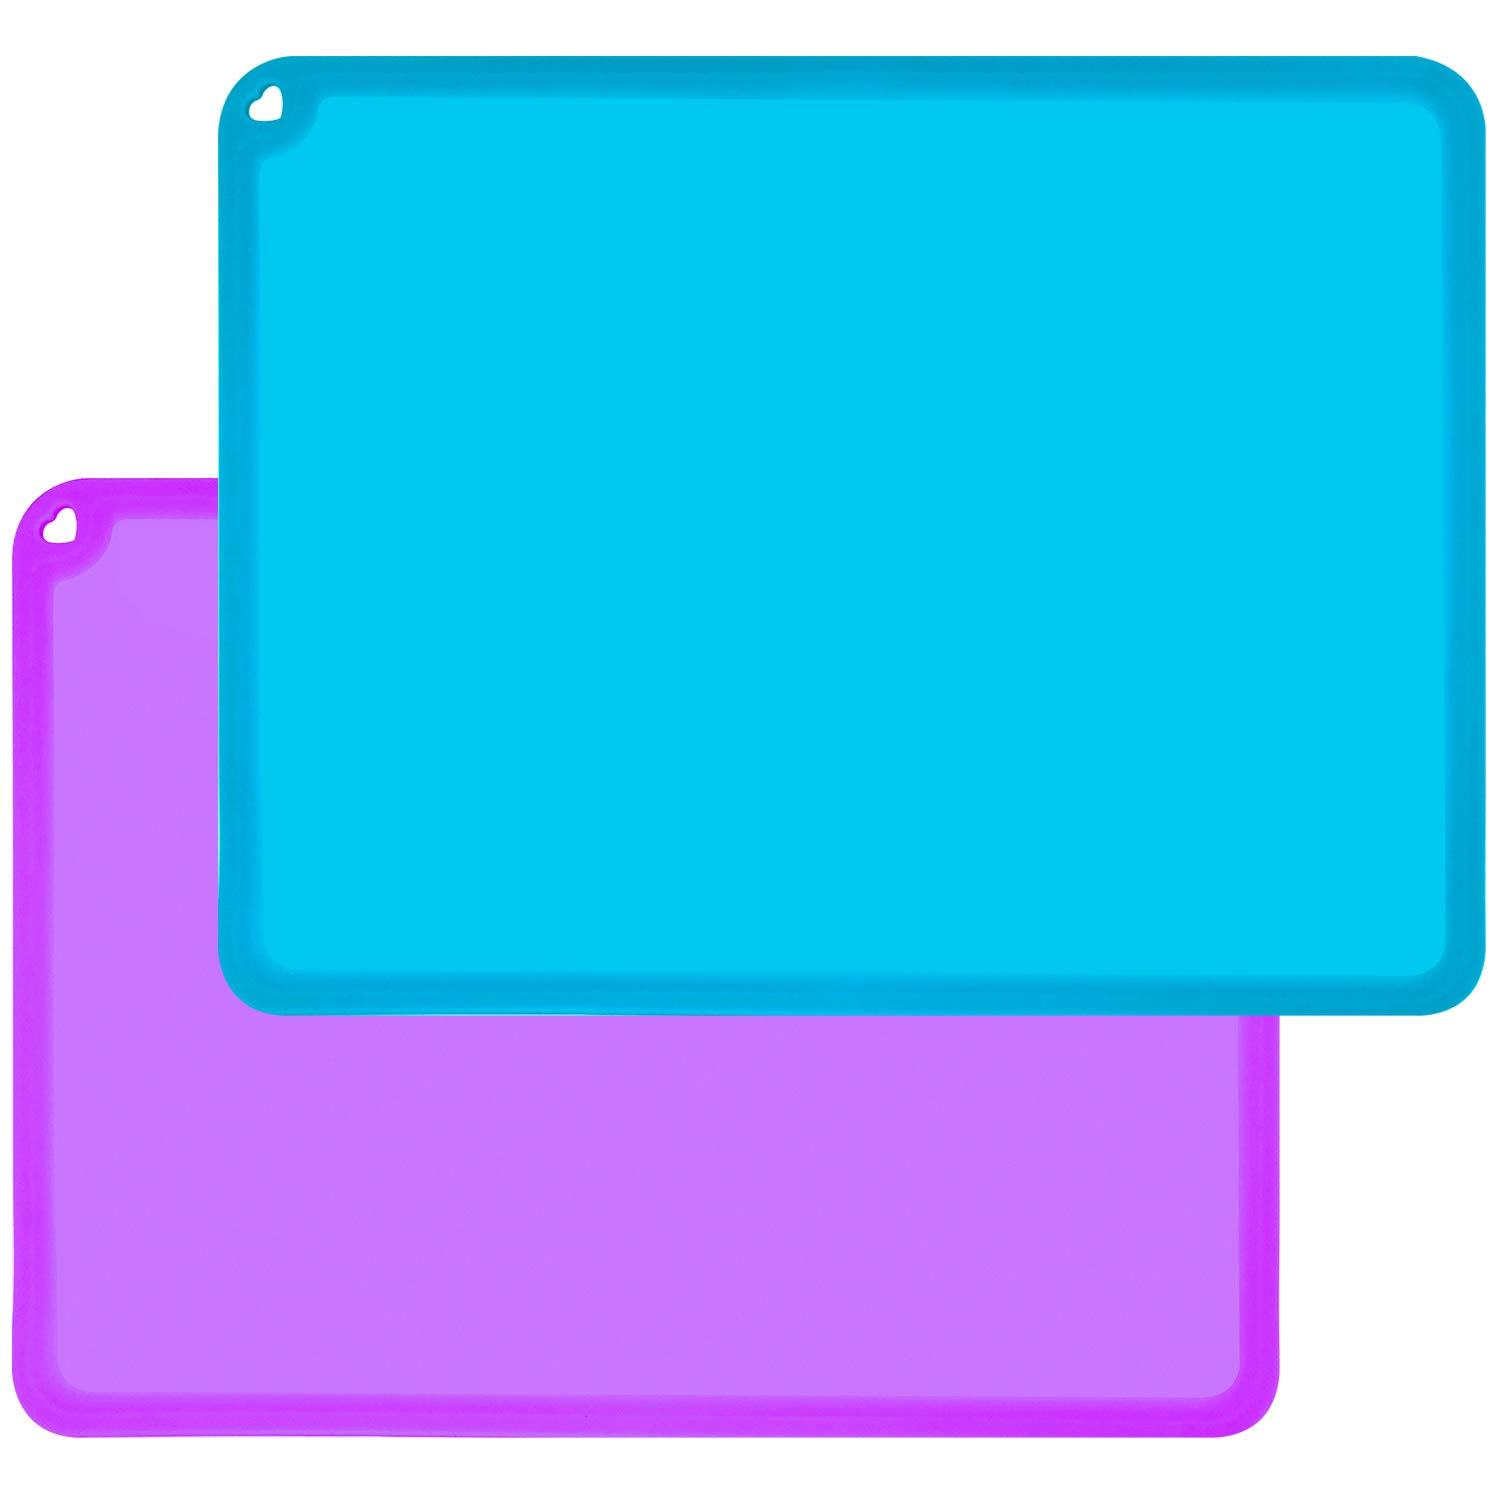 Kids Placemats, Silicone Baby Placemats for Kids Toddler Children Reusable Non-Slip Table Mats, Baby Food Mats for Restaurant, 2 Pack, Purple/Blue